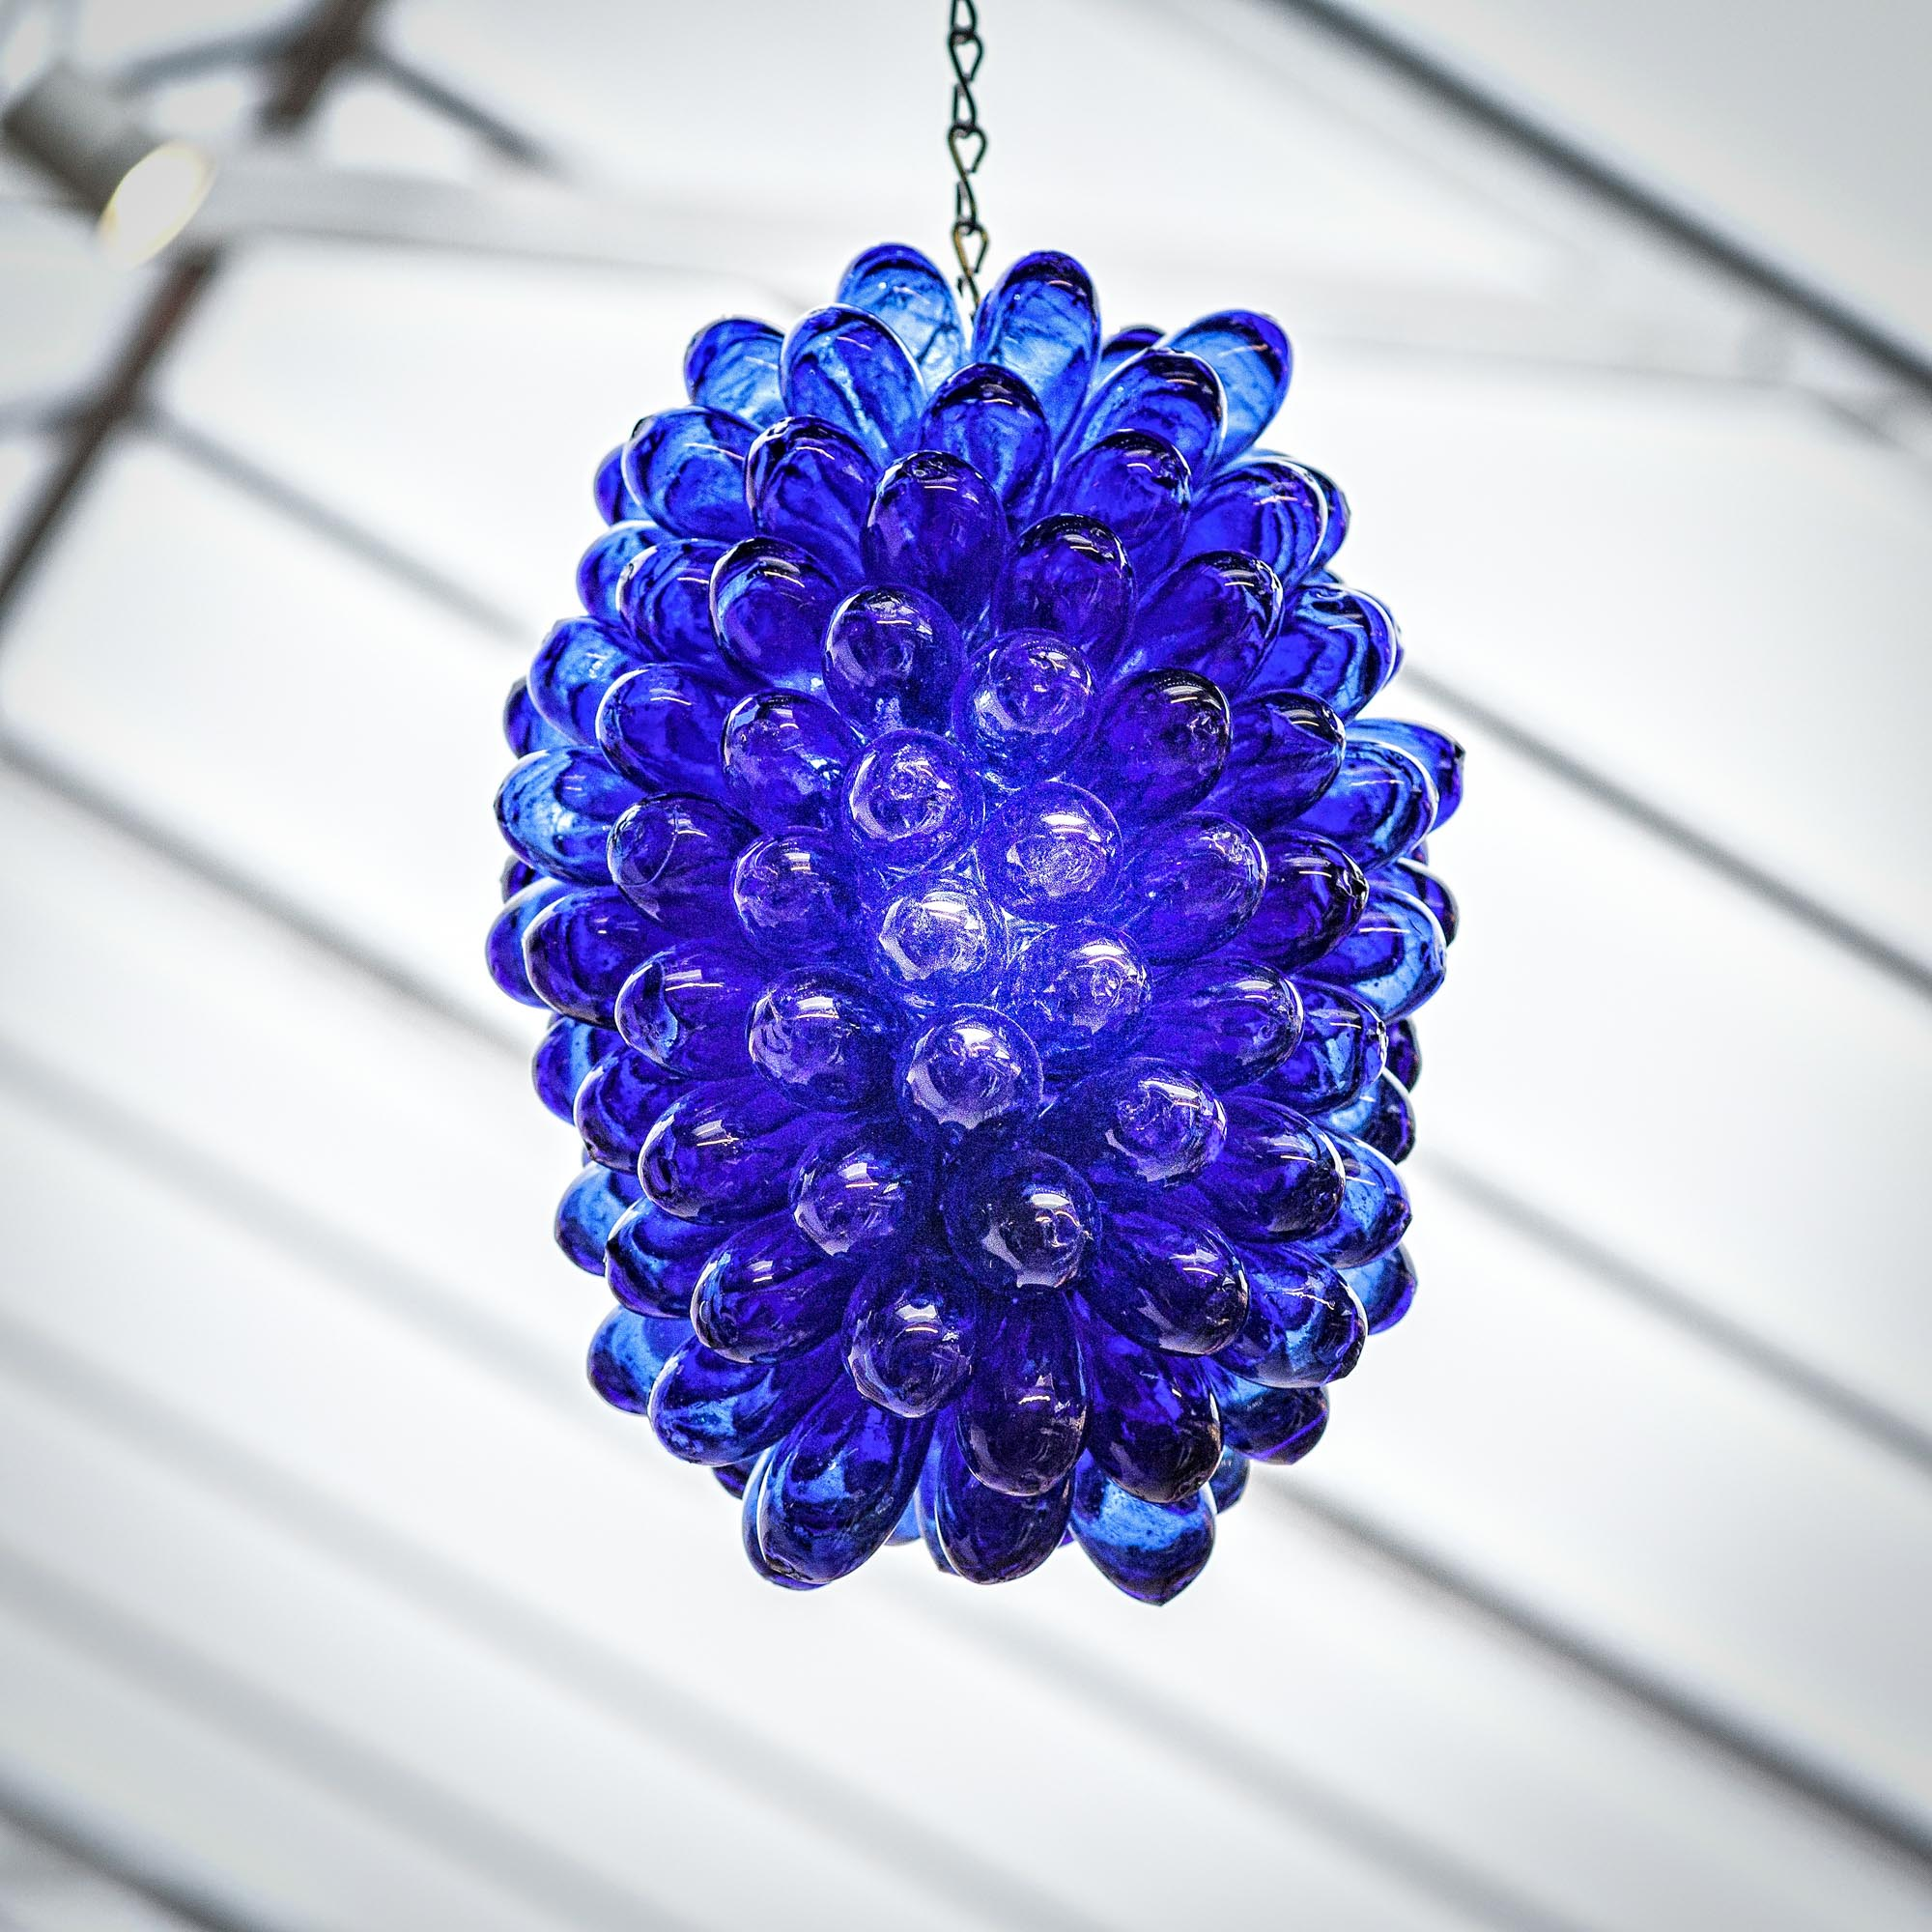 Glass grape cluster ceiling lights glass grape cluster ceiling lights in blue mozeypictures Image collections